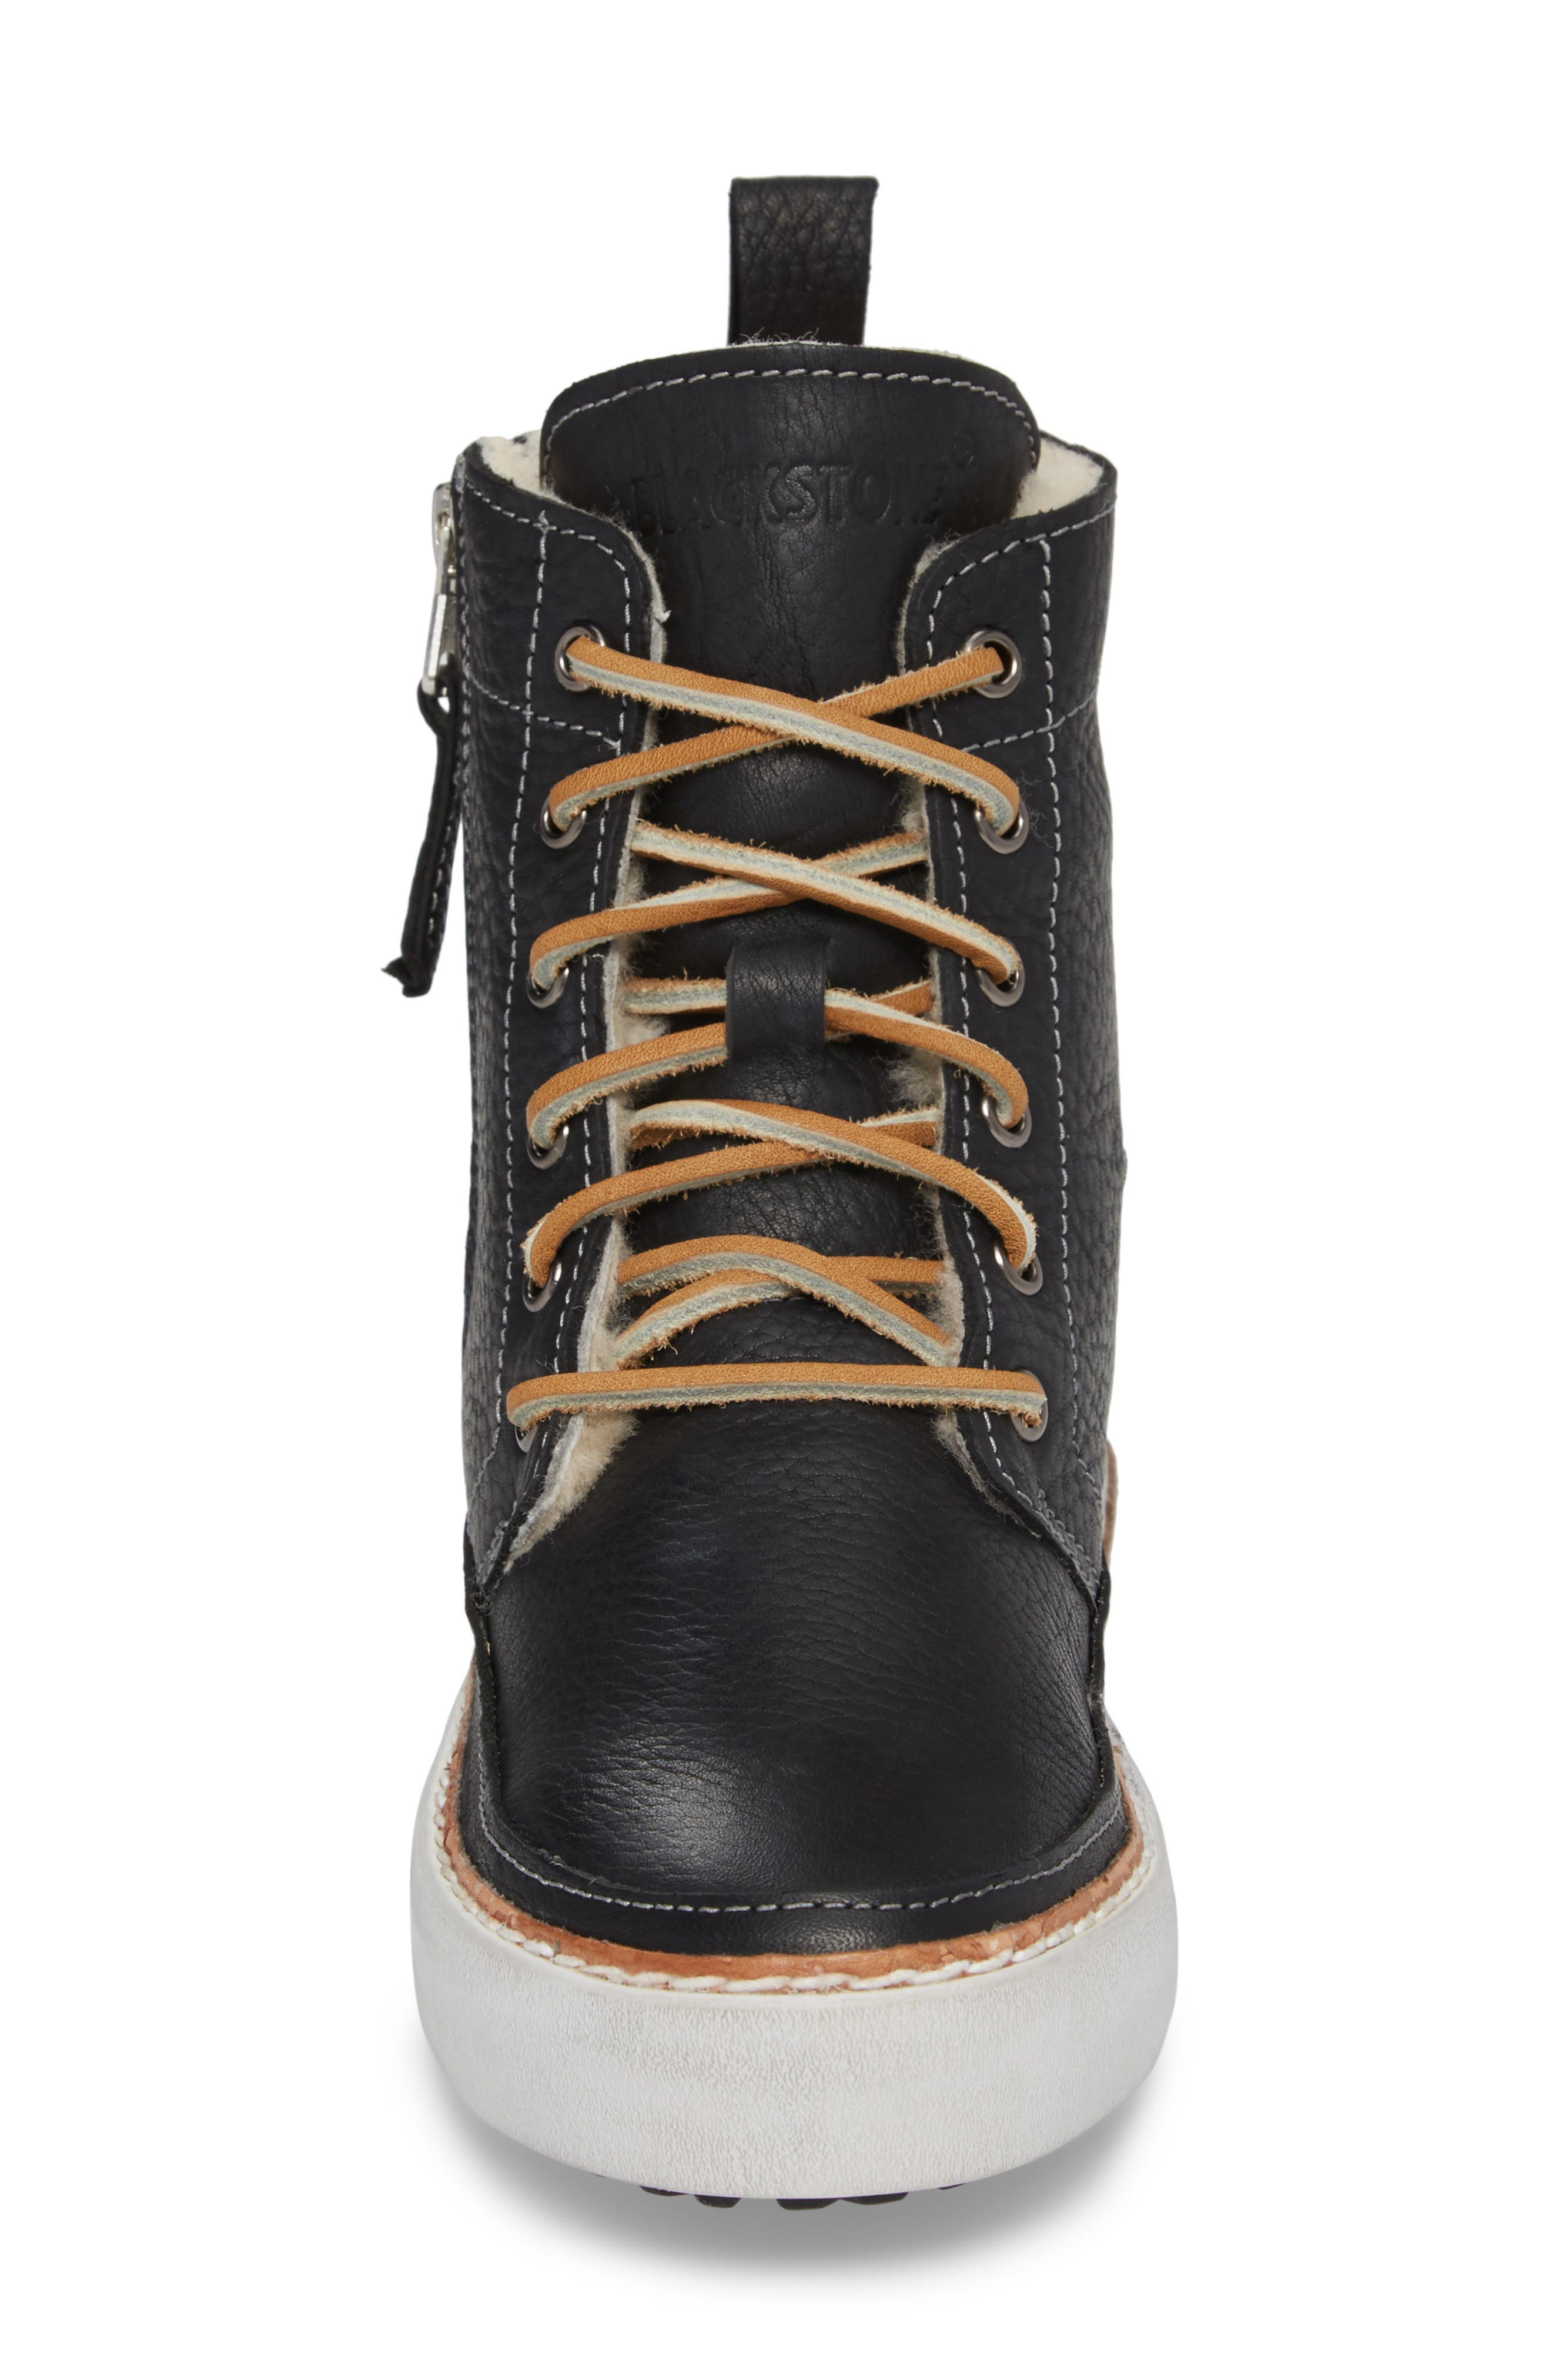 'CW96' Genuine Shearling Lined Sneaker Boot,                             Alternate thumbnail 4, color,                             BLACK LEATHER